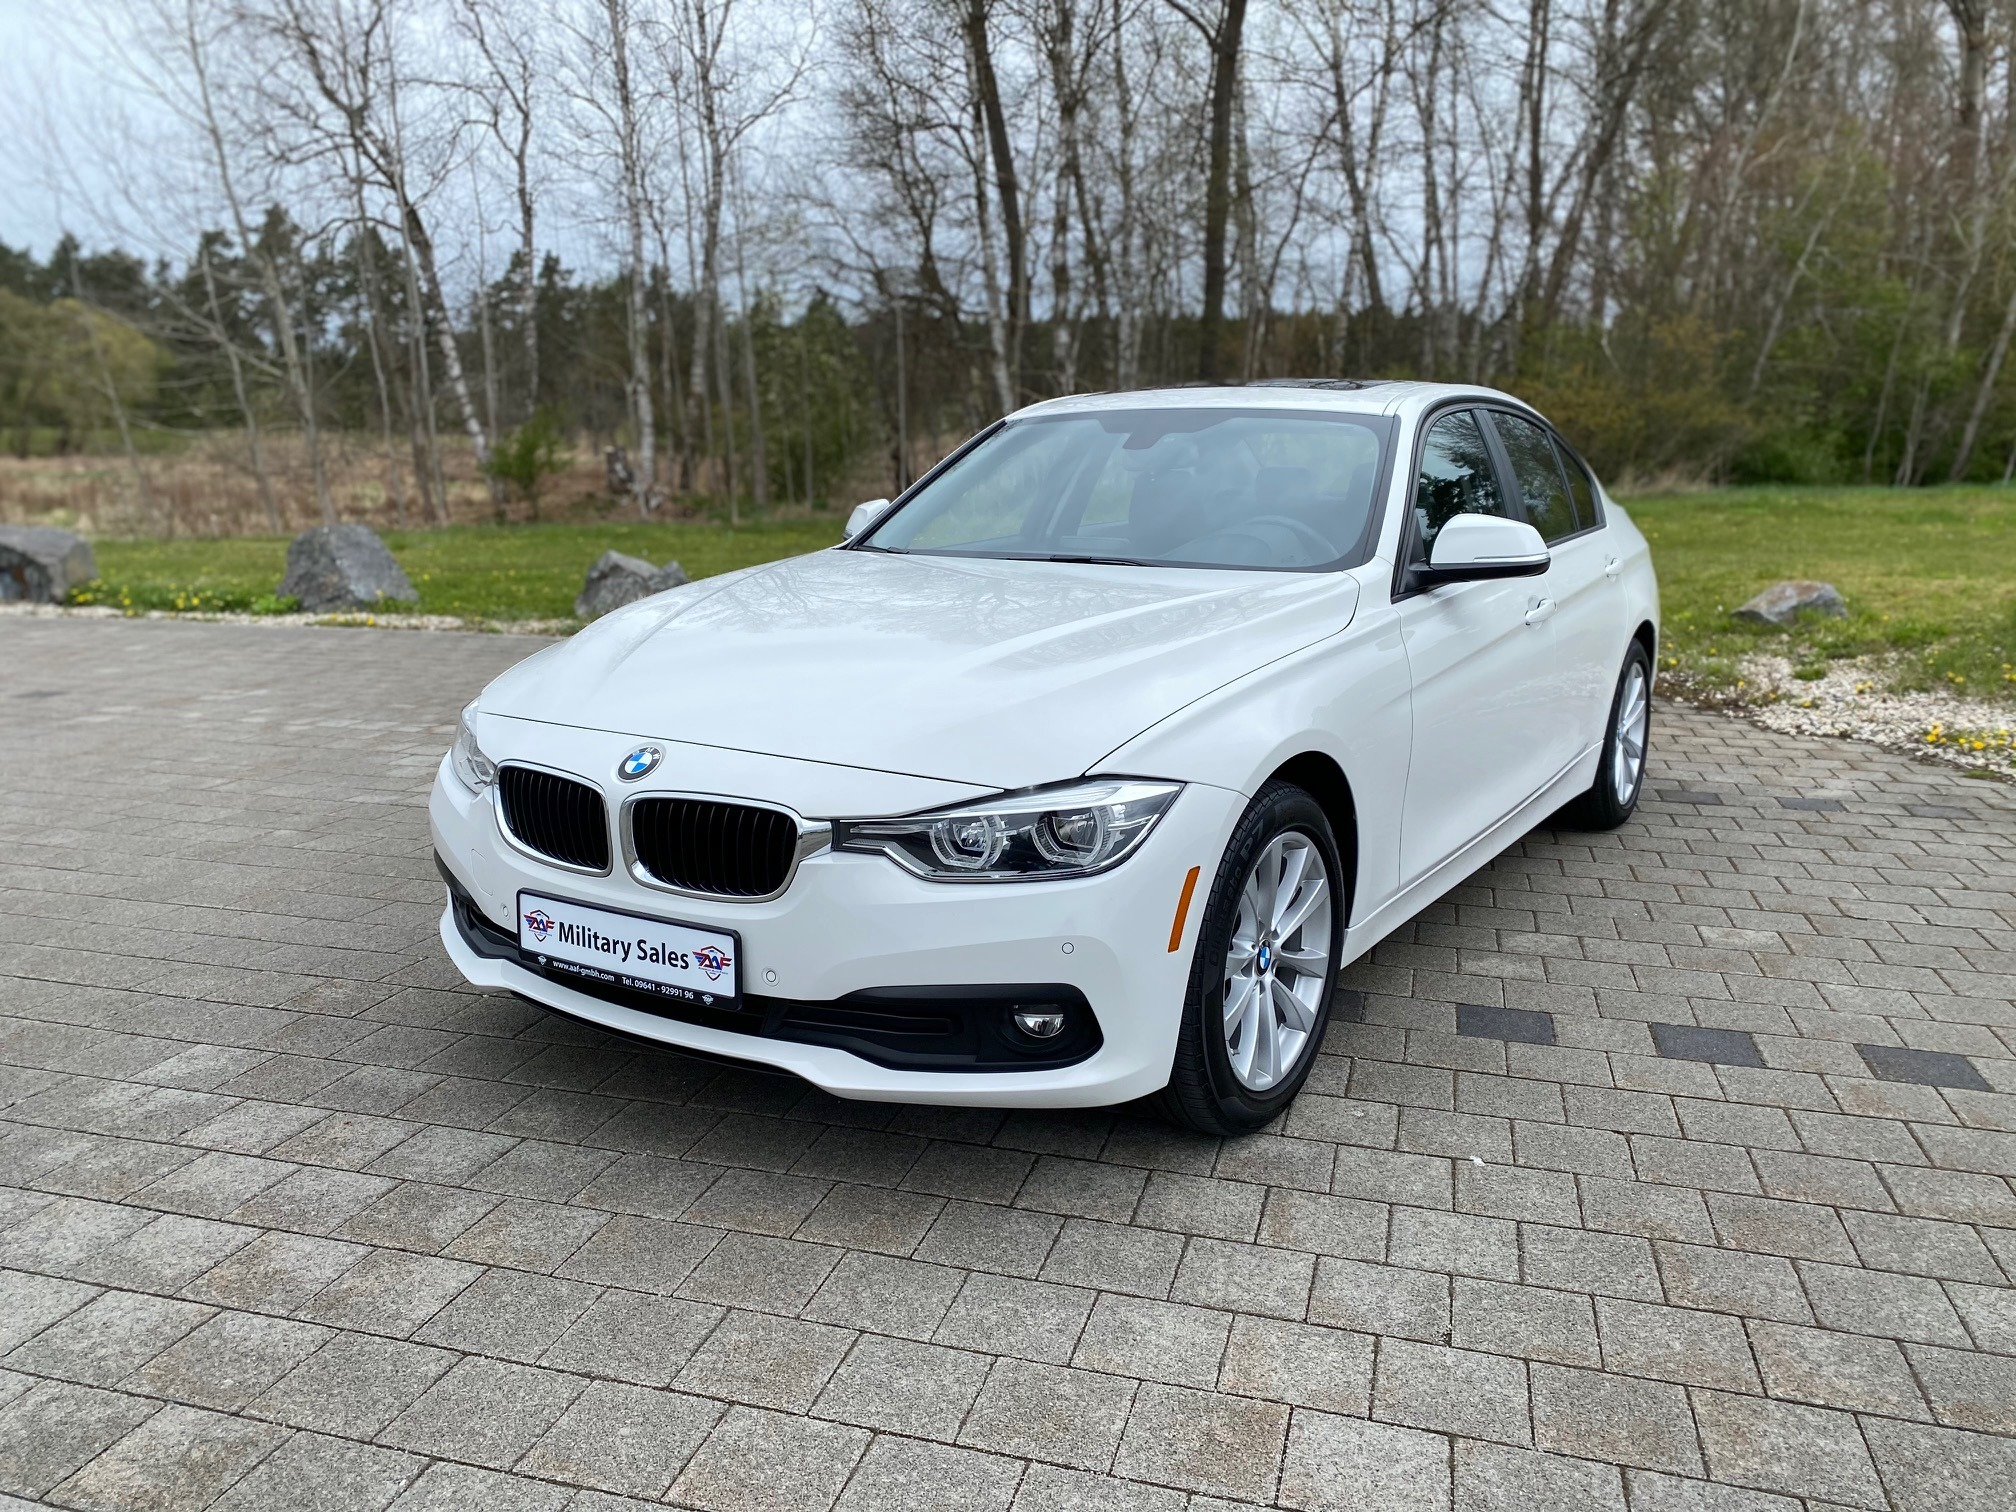 2018 BMW 320i xDrive </br>as low as </br>$189 per paycheck